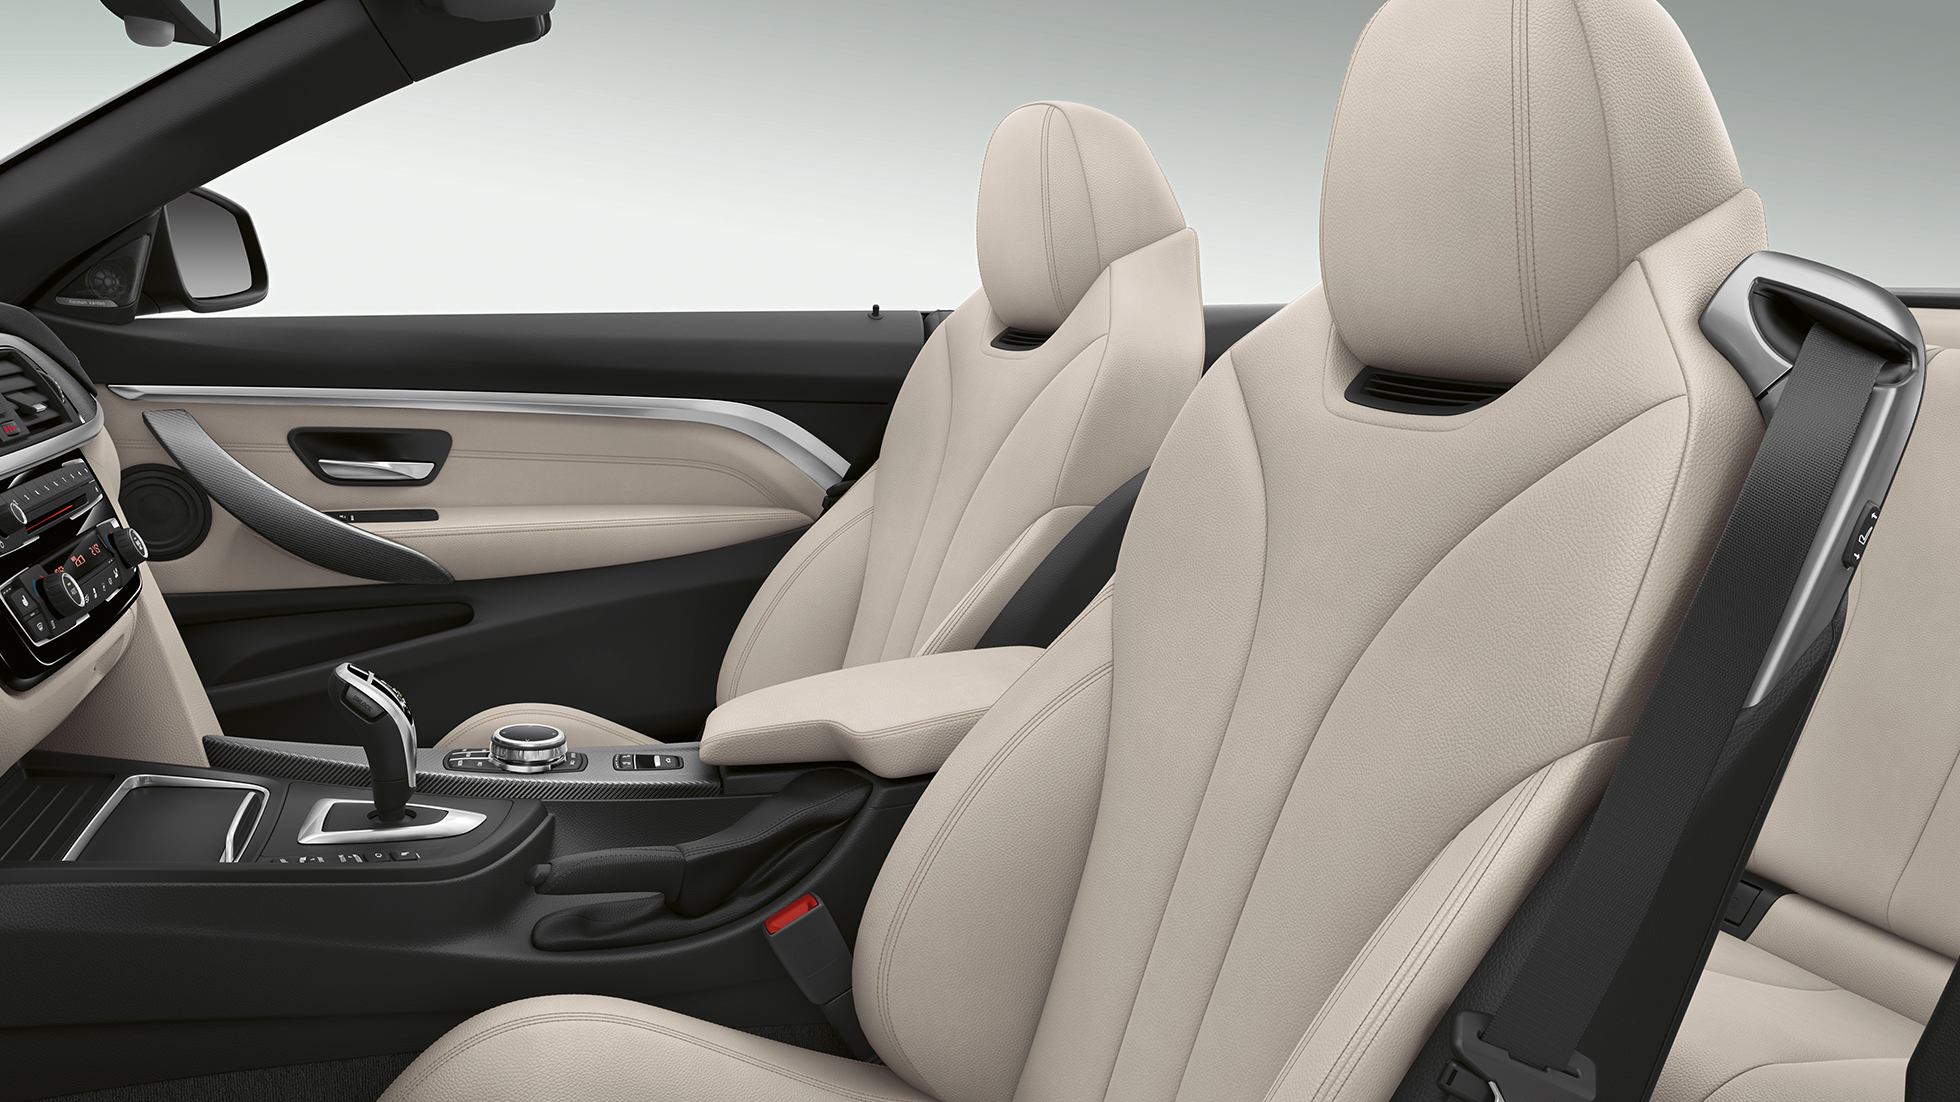 BMW 4er Cabrio, Modell Luxury Line Interieur